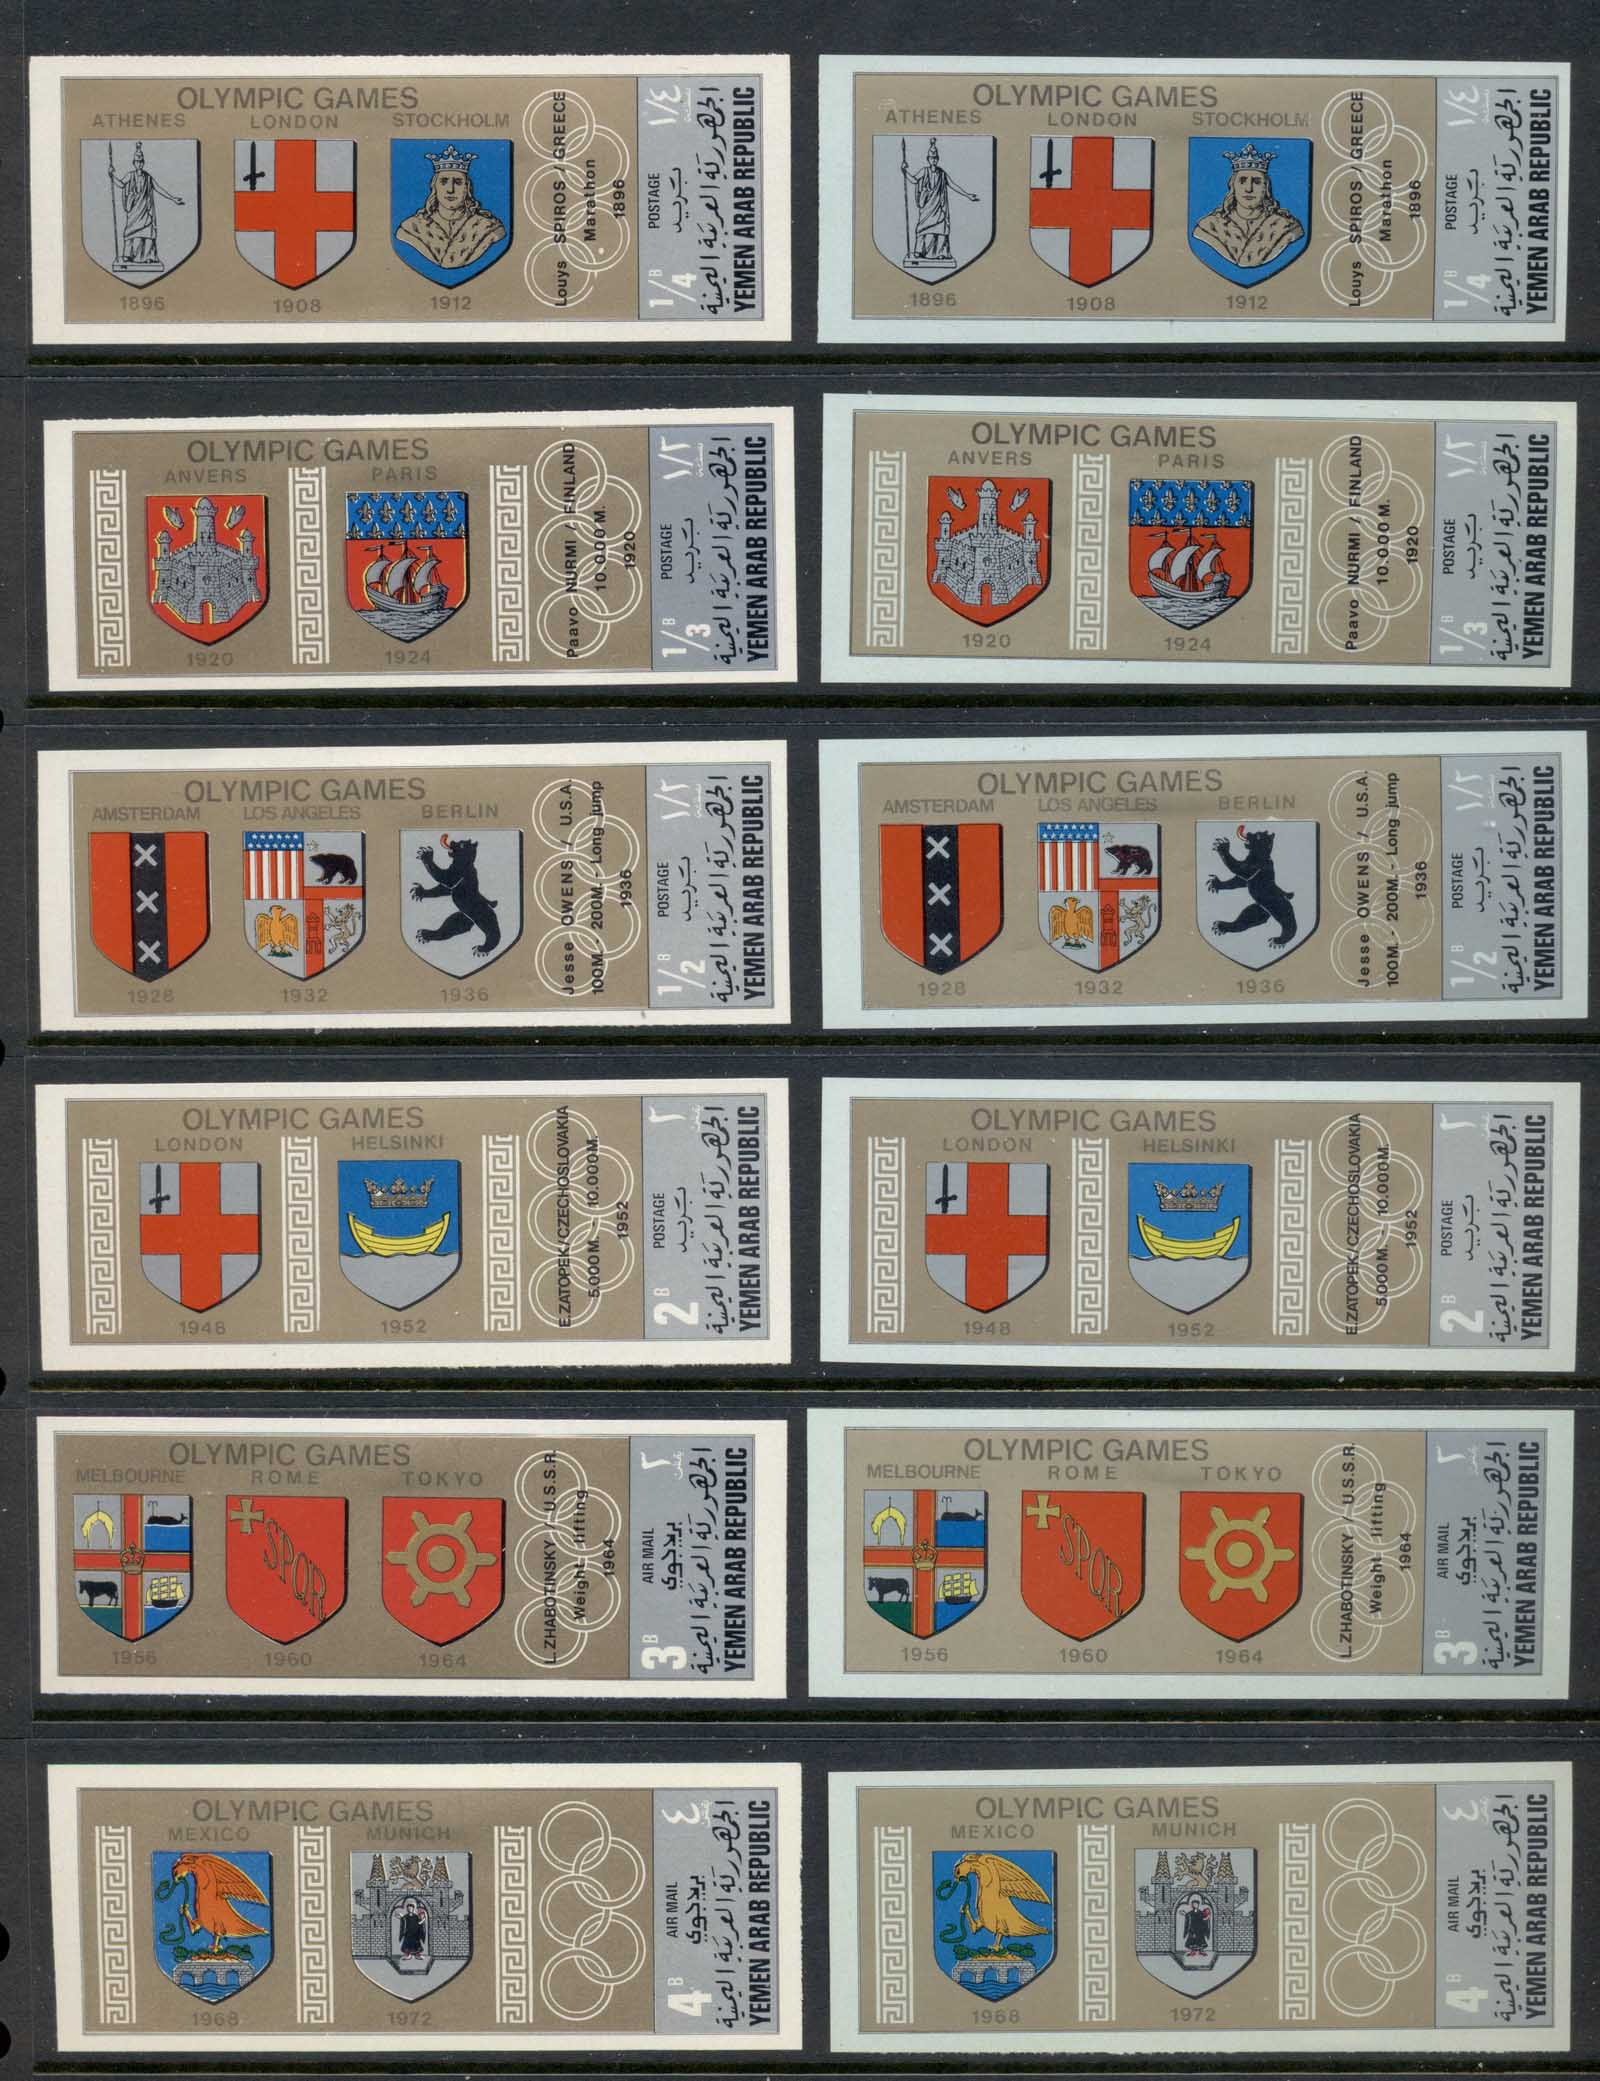 Yemen 1968 Mi#839-844 Summer Olympics Venues, Coats of Arms, white & blue borders IMPERF MLH